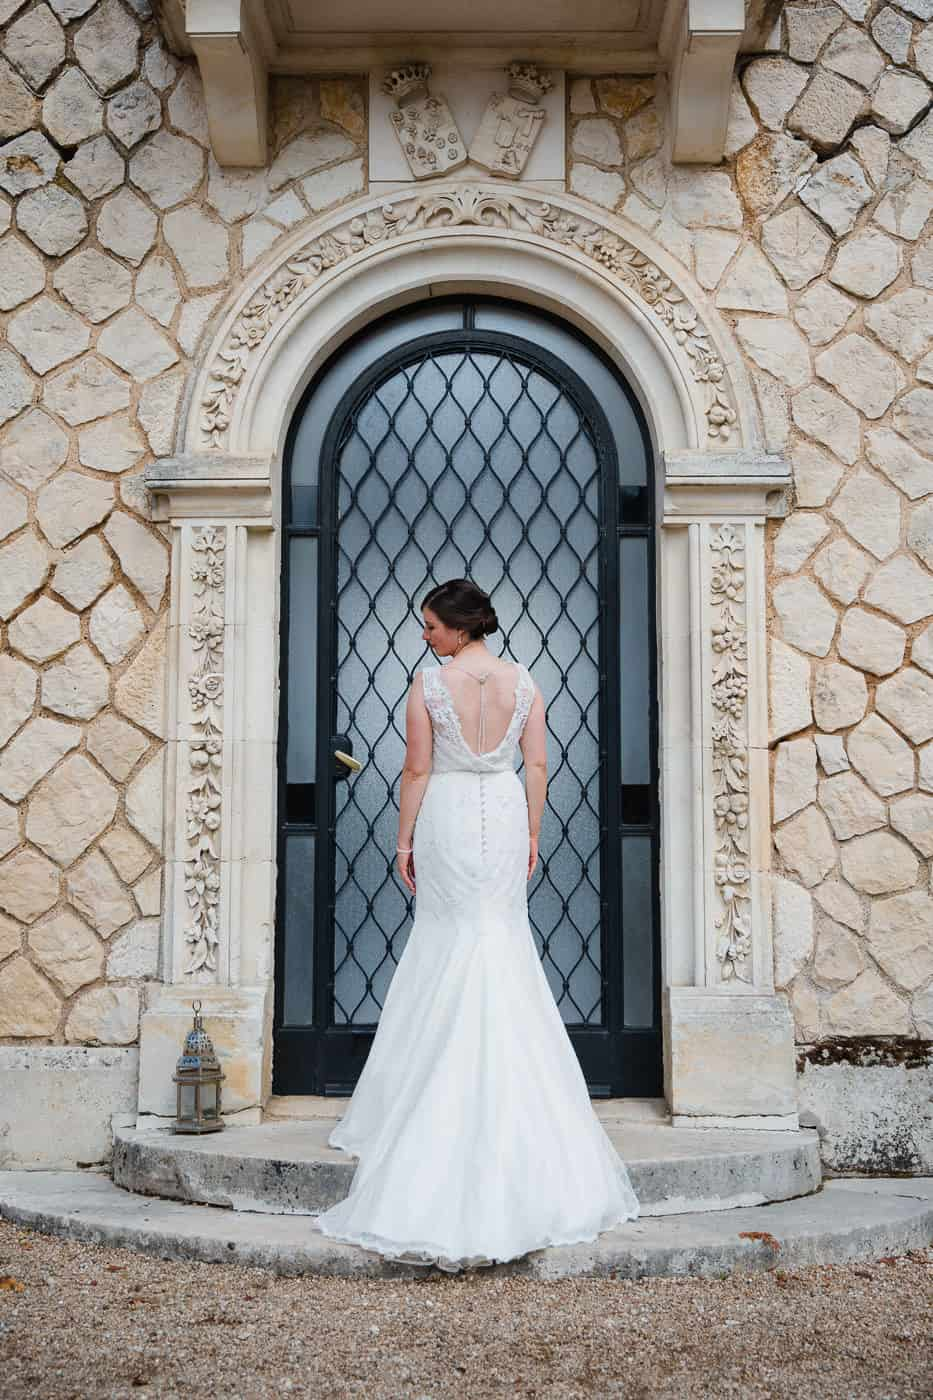 Chateau de la Couronne Wedding Photography - Bride